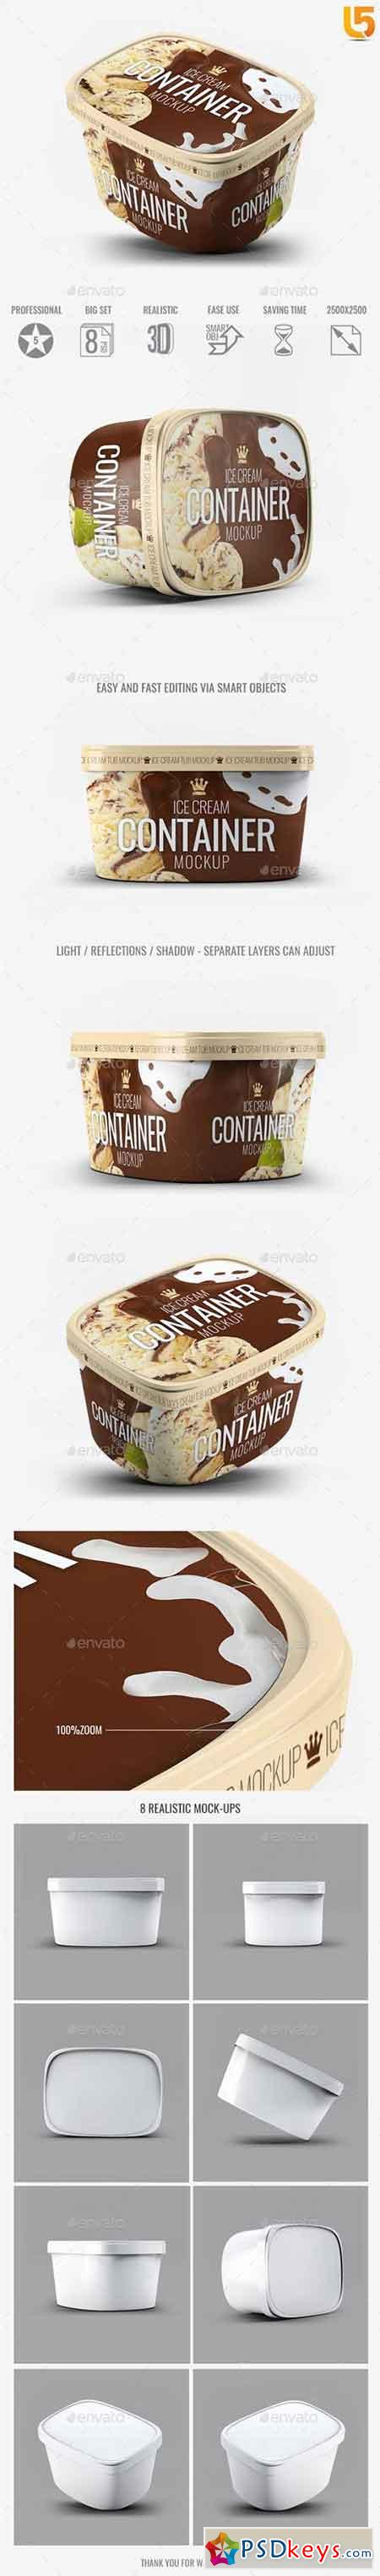 Ice Cream Container Mock-Up 20413057